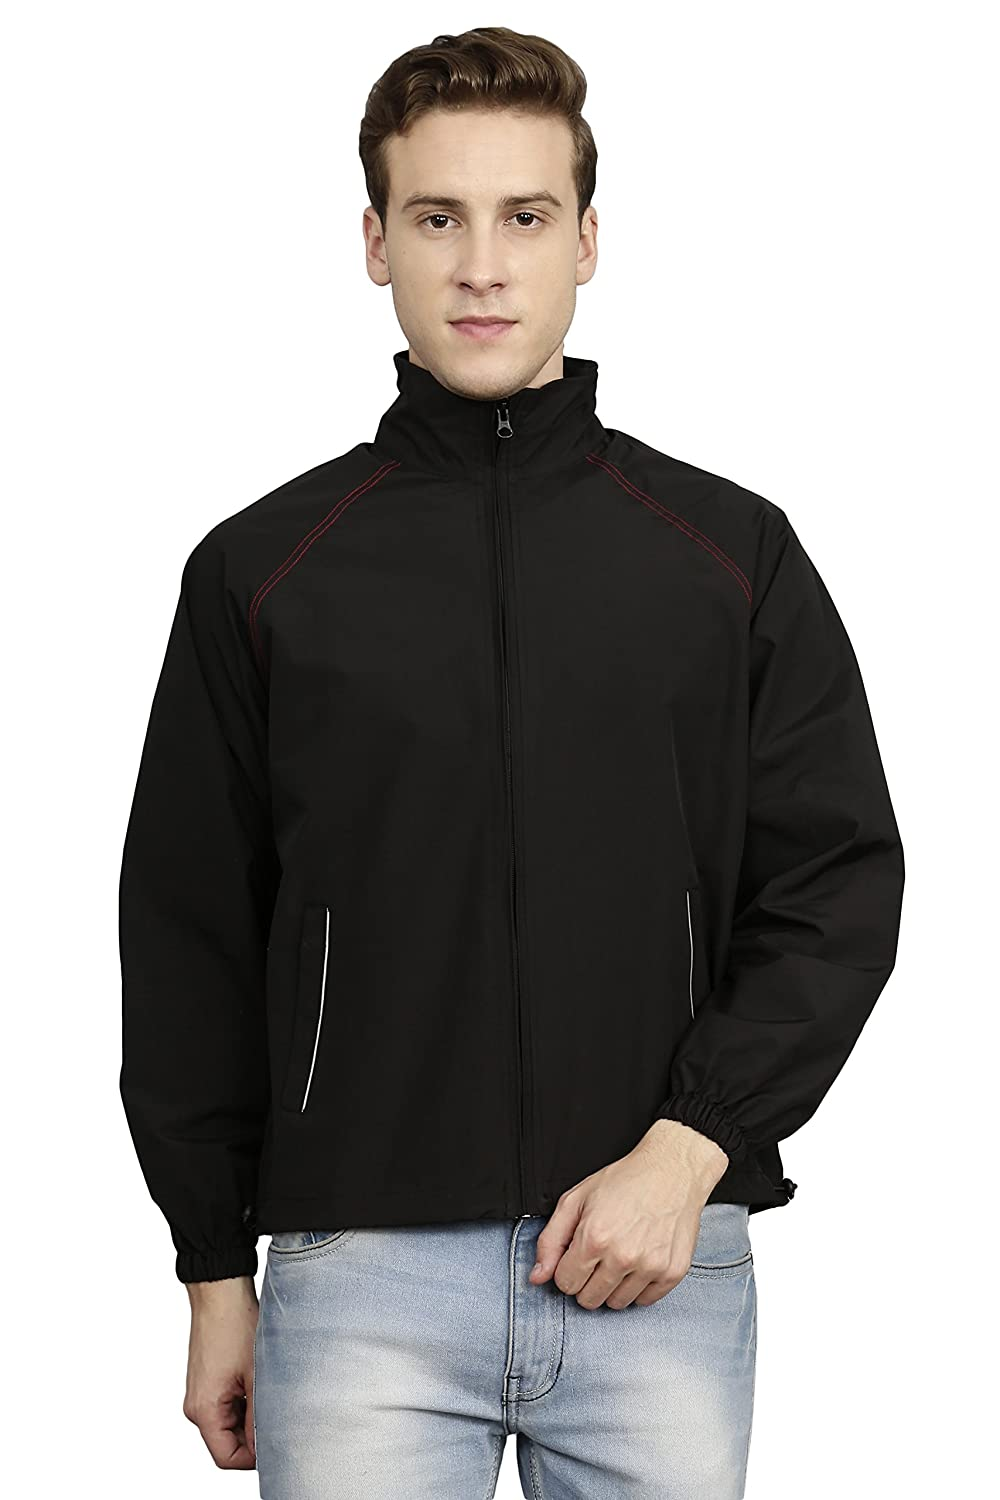 baac6730b VERSATYL- Feather-2.0 100% Water Proof Polyester Jacket for Men and Women:  Amazon.in: Clothing & Accessories